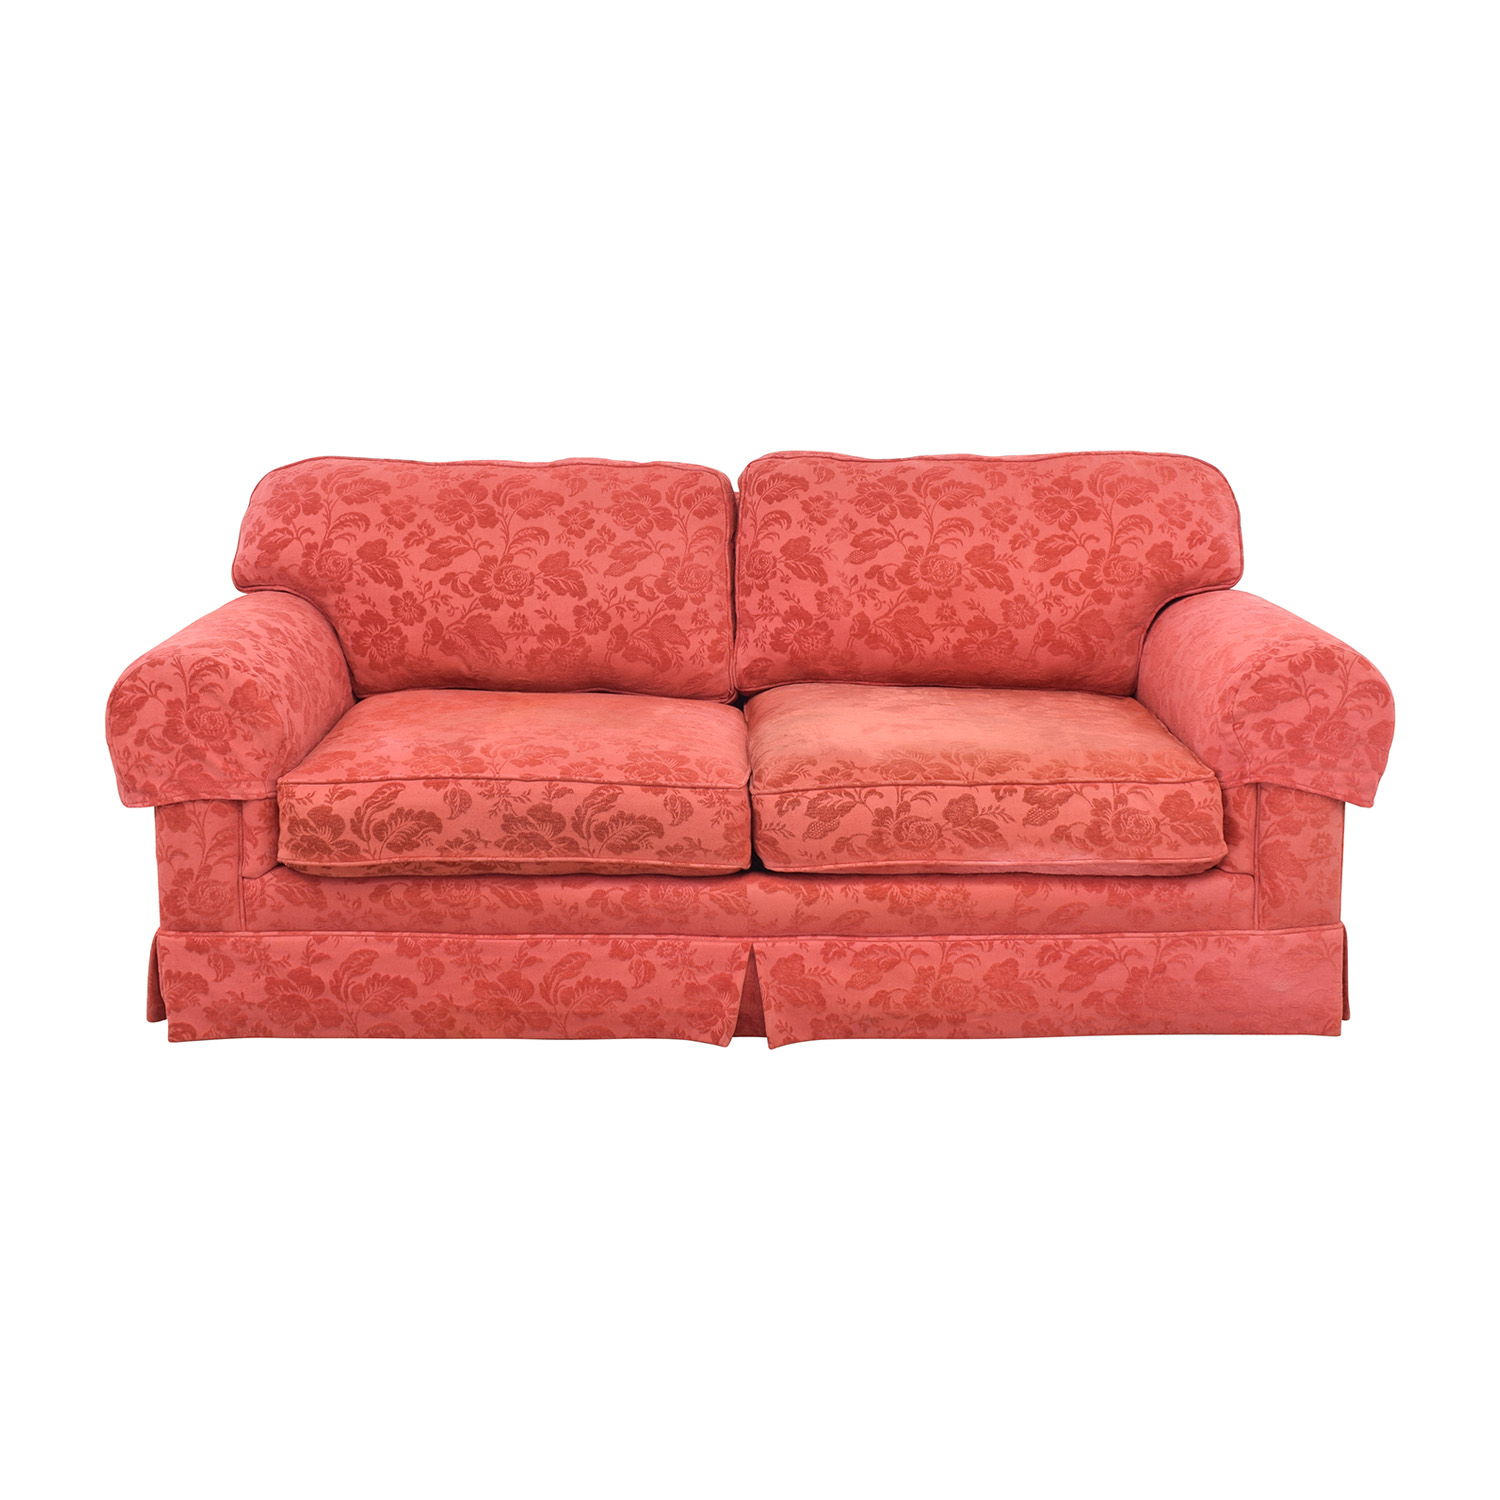 Lee Industries Two Cushion Sofa / Classic Sofas